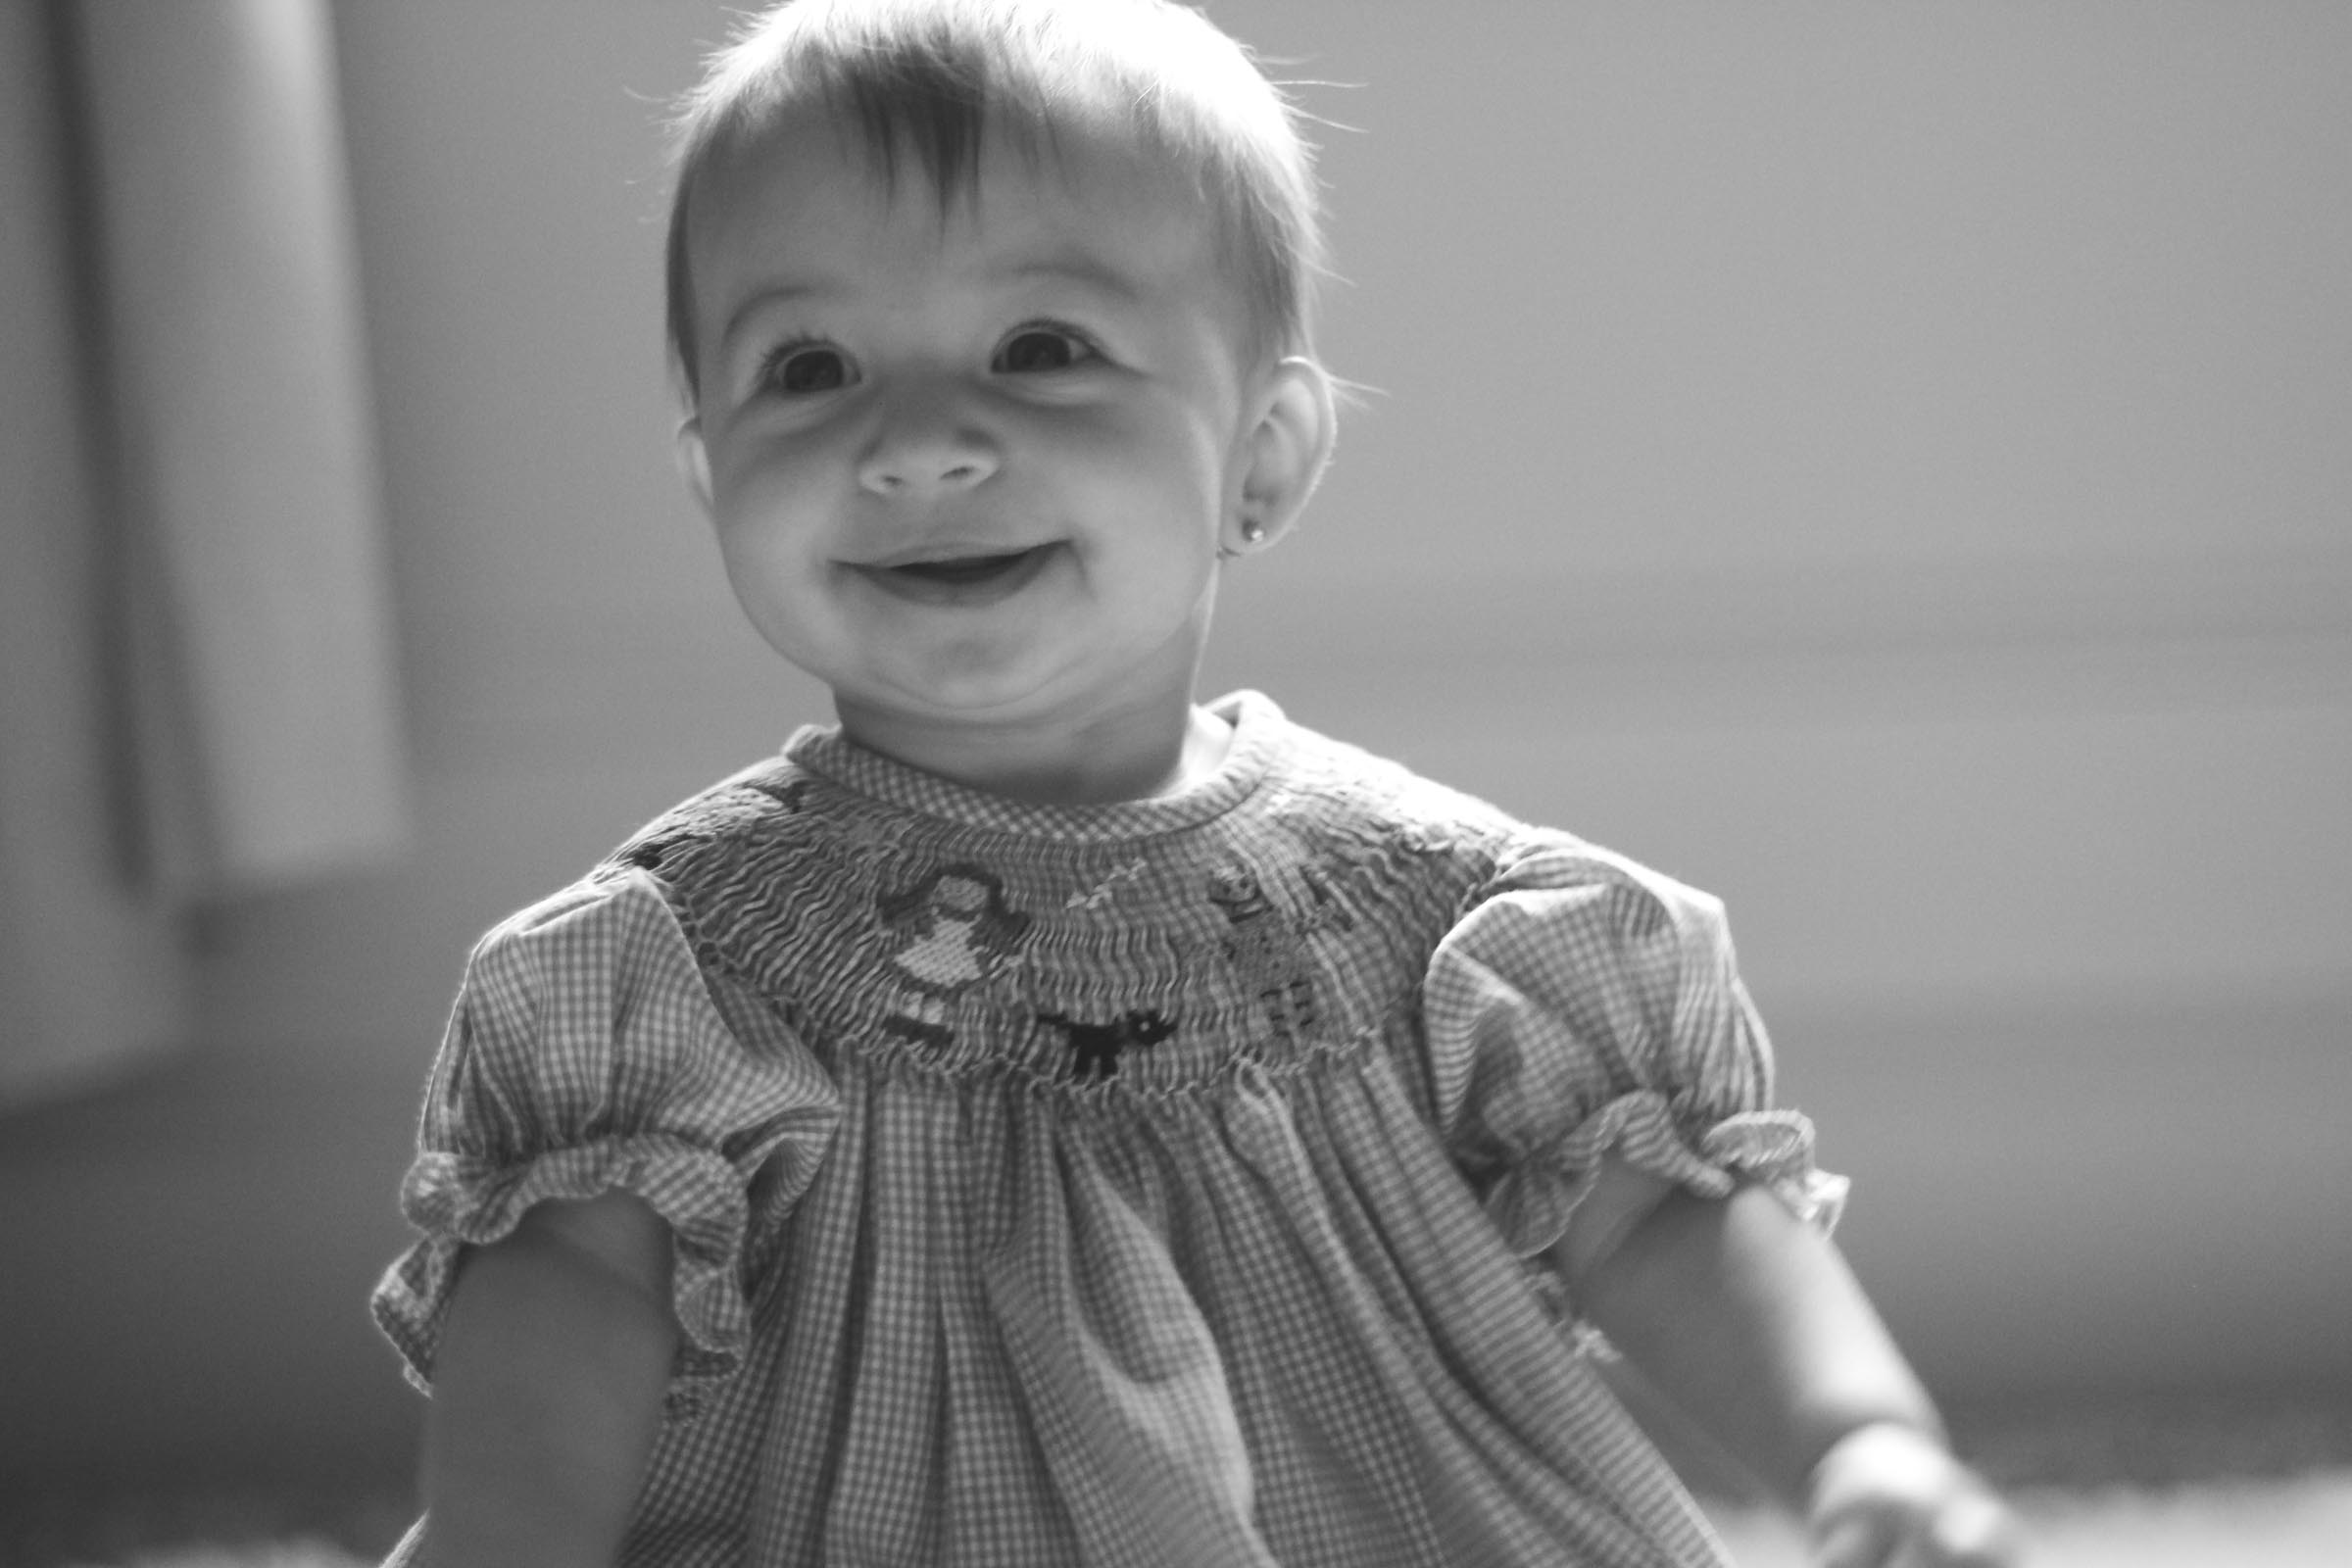 ashley-landry-photography-raymond-09-2016-18-of-41